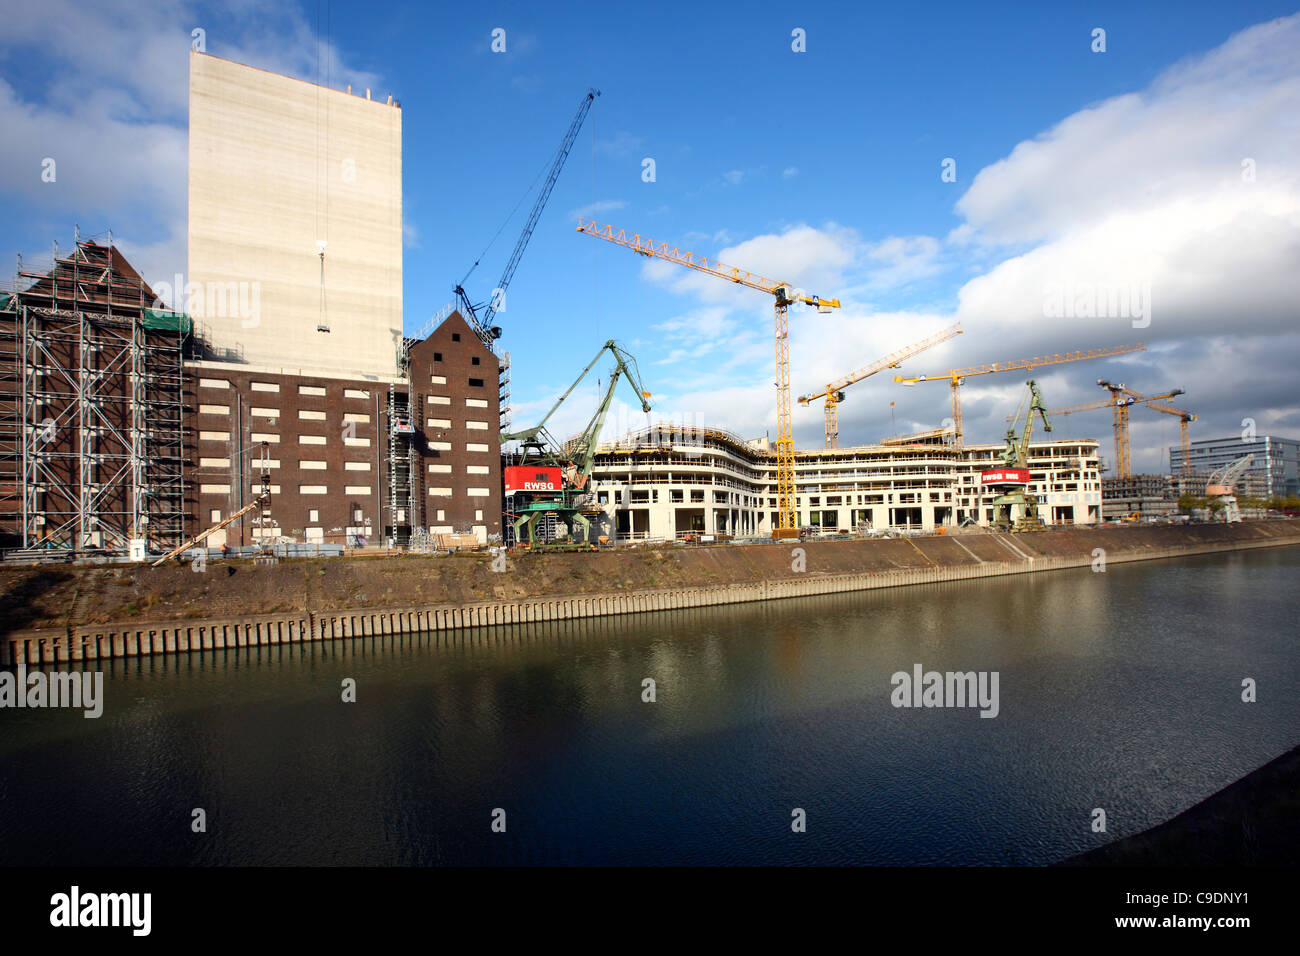 Construction site of a new administration building. Construction cranes. Innenhafen, Duisburg, Germany. Stock Photo